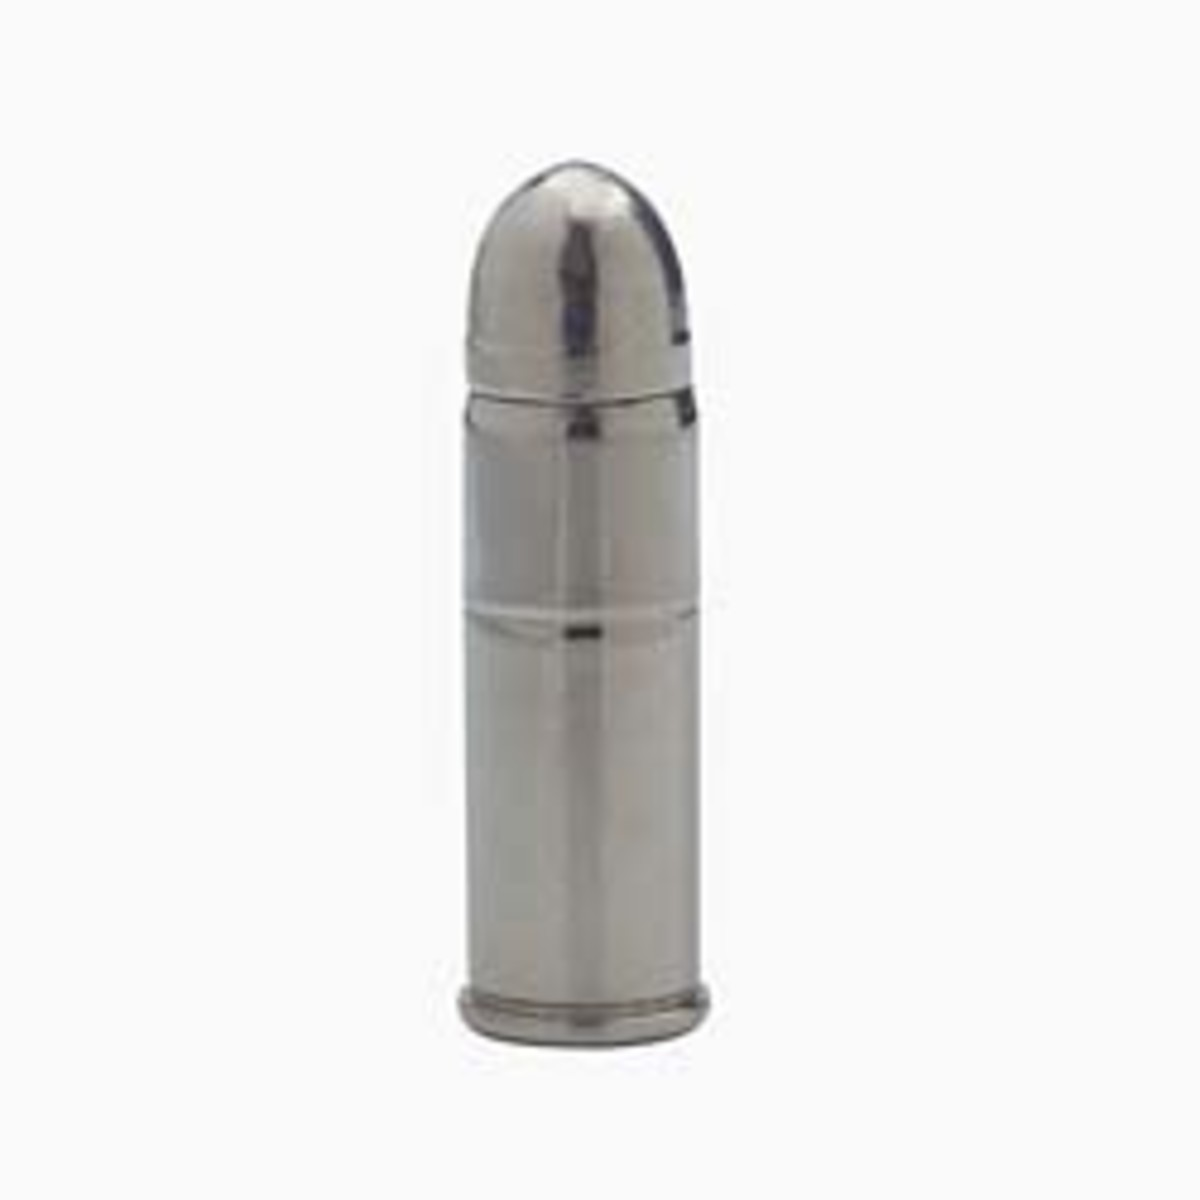 A silver bullet is said to be a sure stop to a werewolf